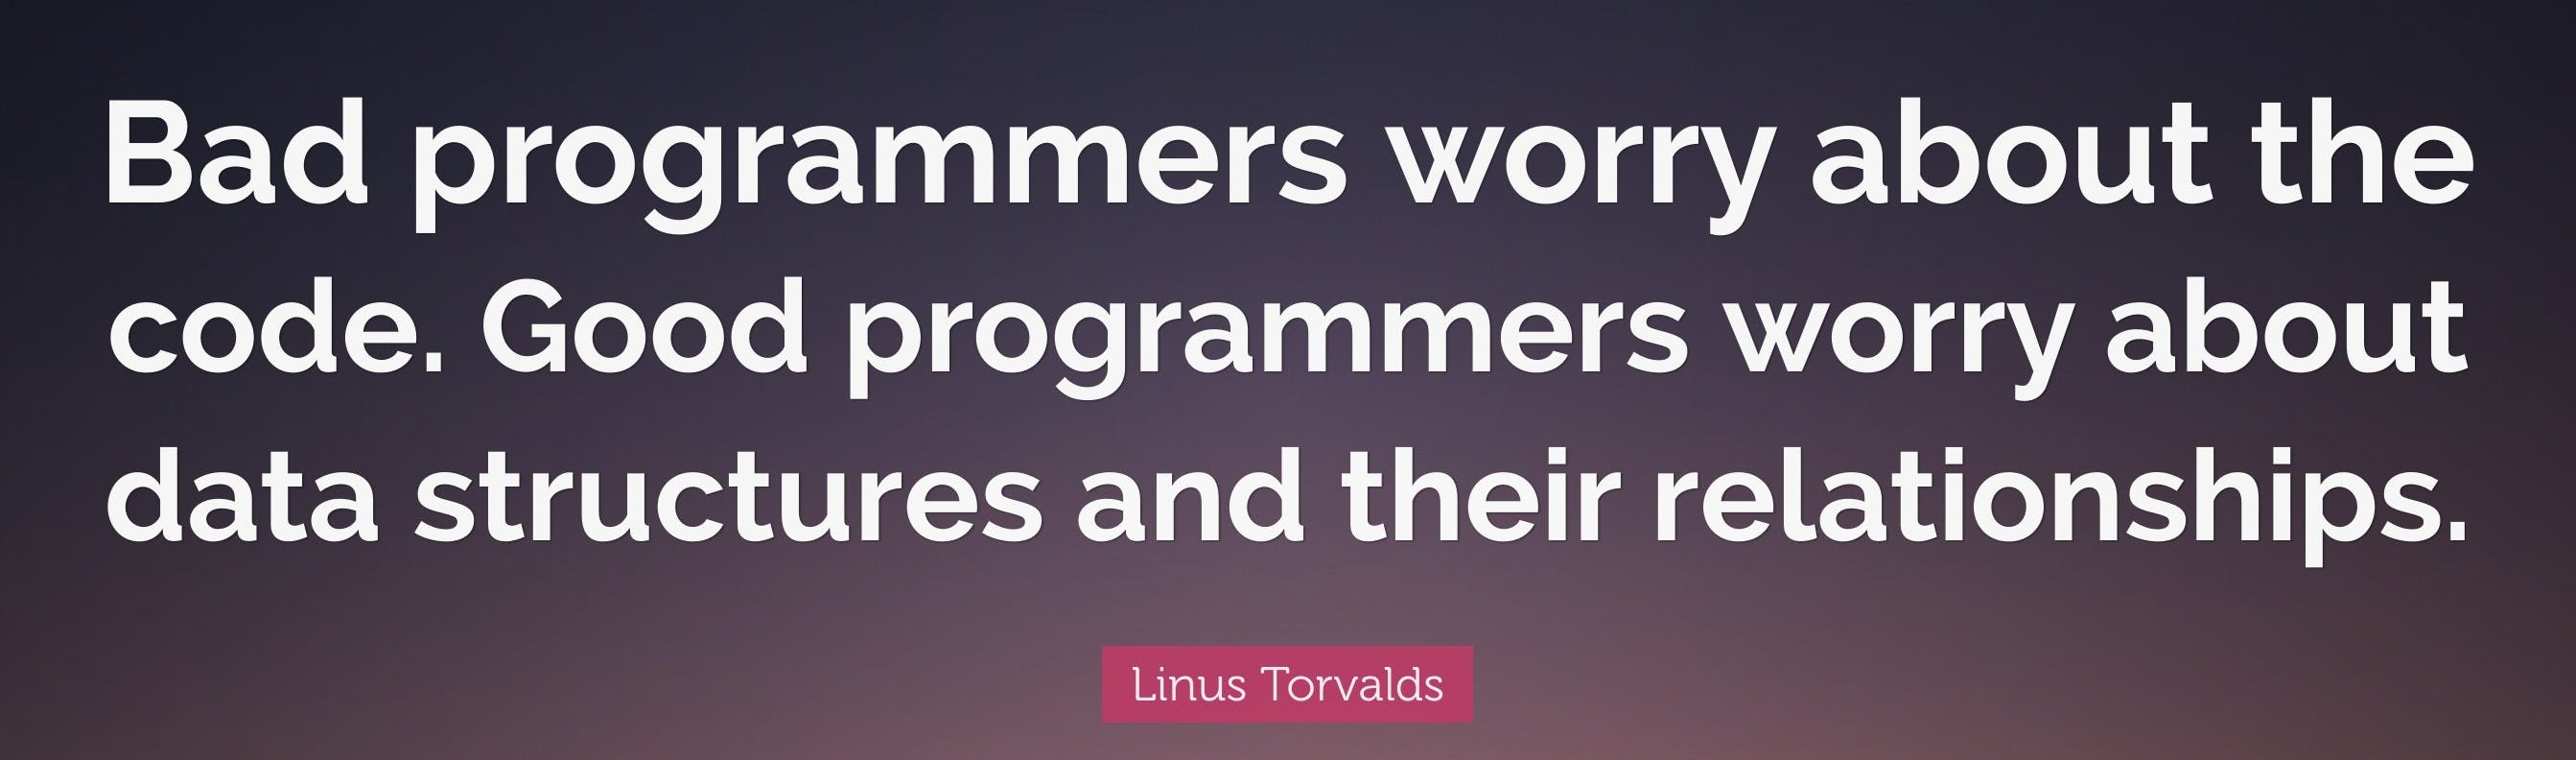 1751006-Linus-Torvalds-Quote-Bad-programmers-worry-about-the-code-Good.jpg